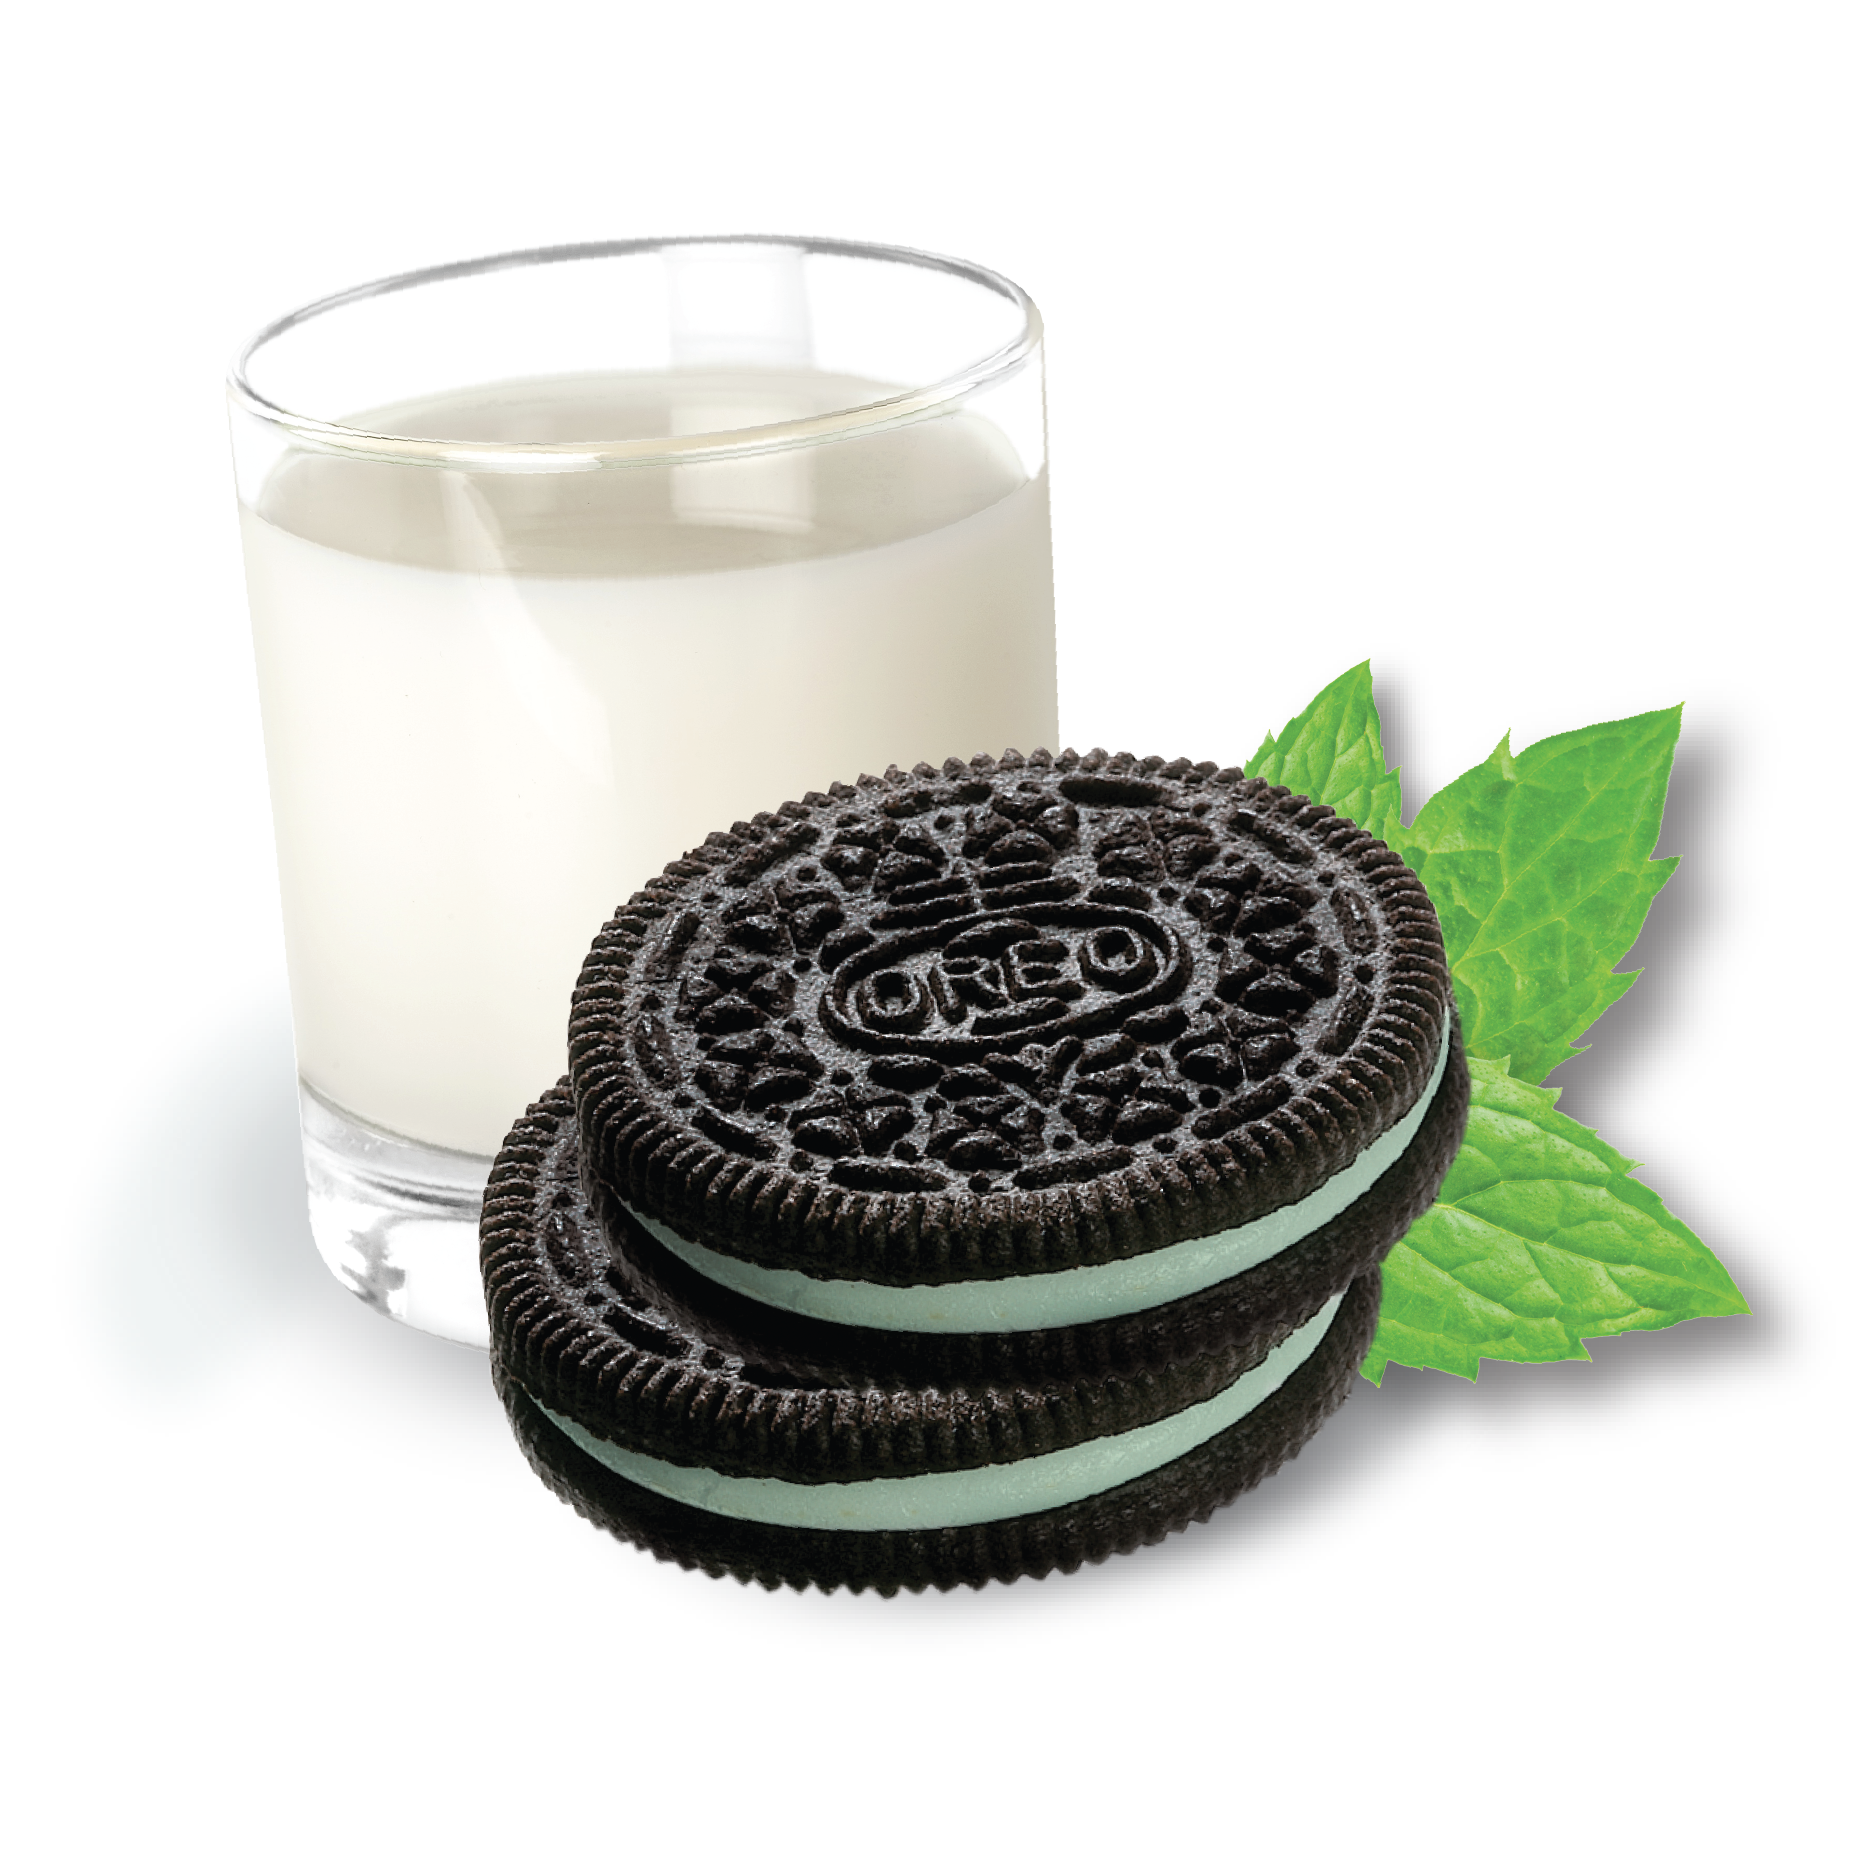 Mint Oreo® Cookies and Creme Ice Cream